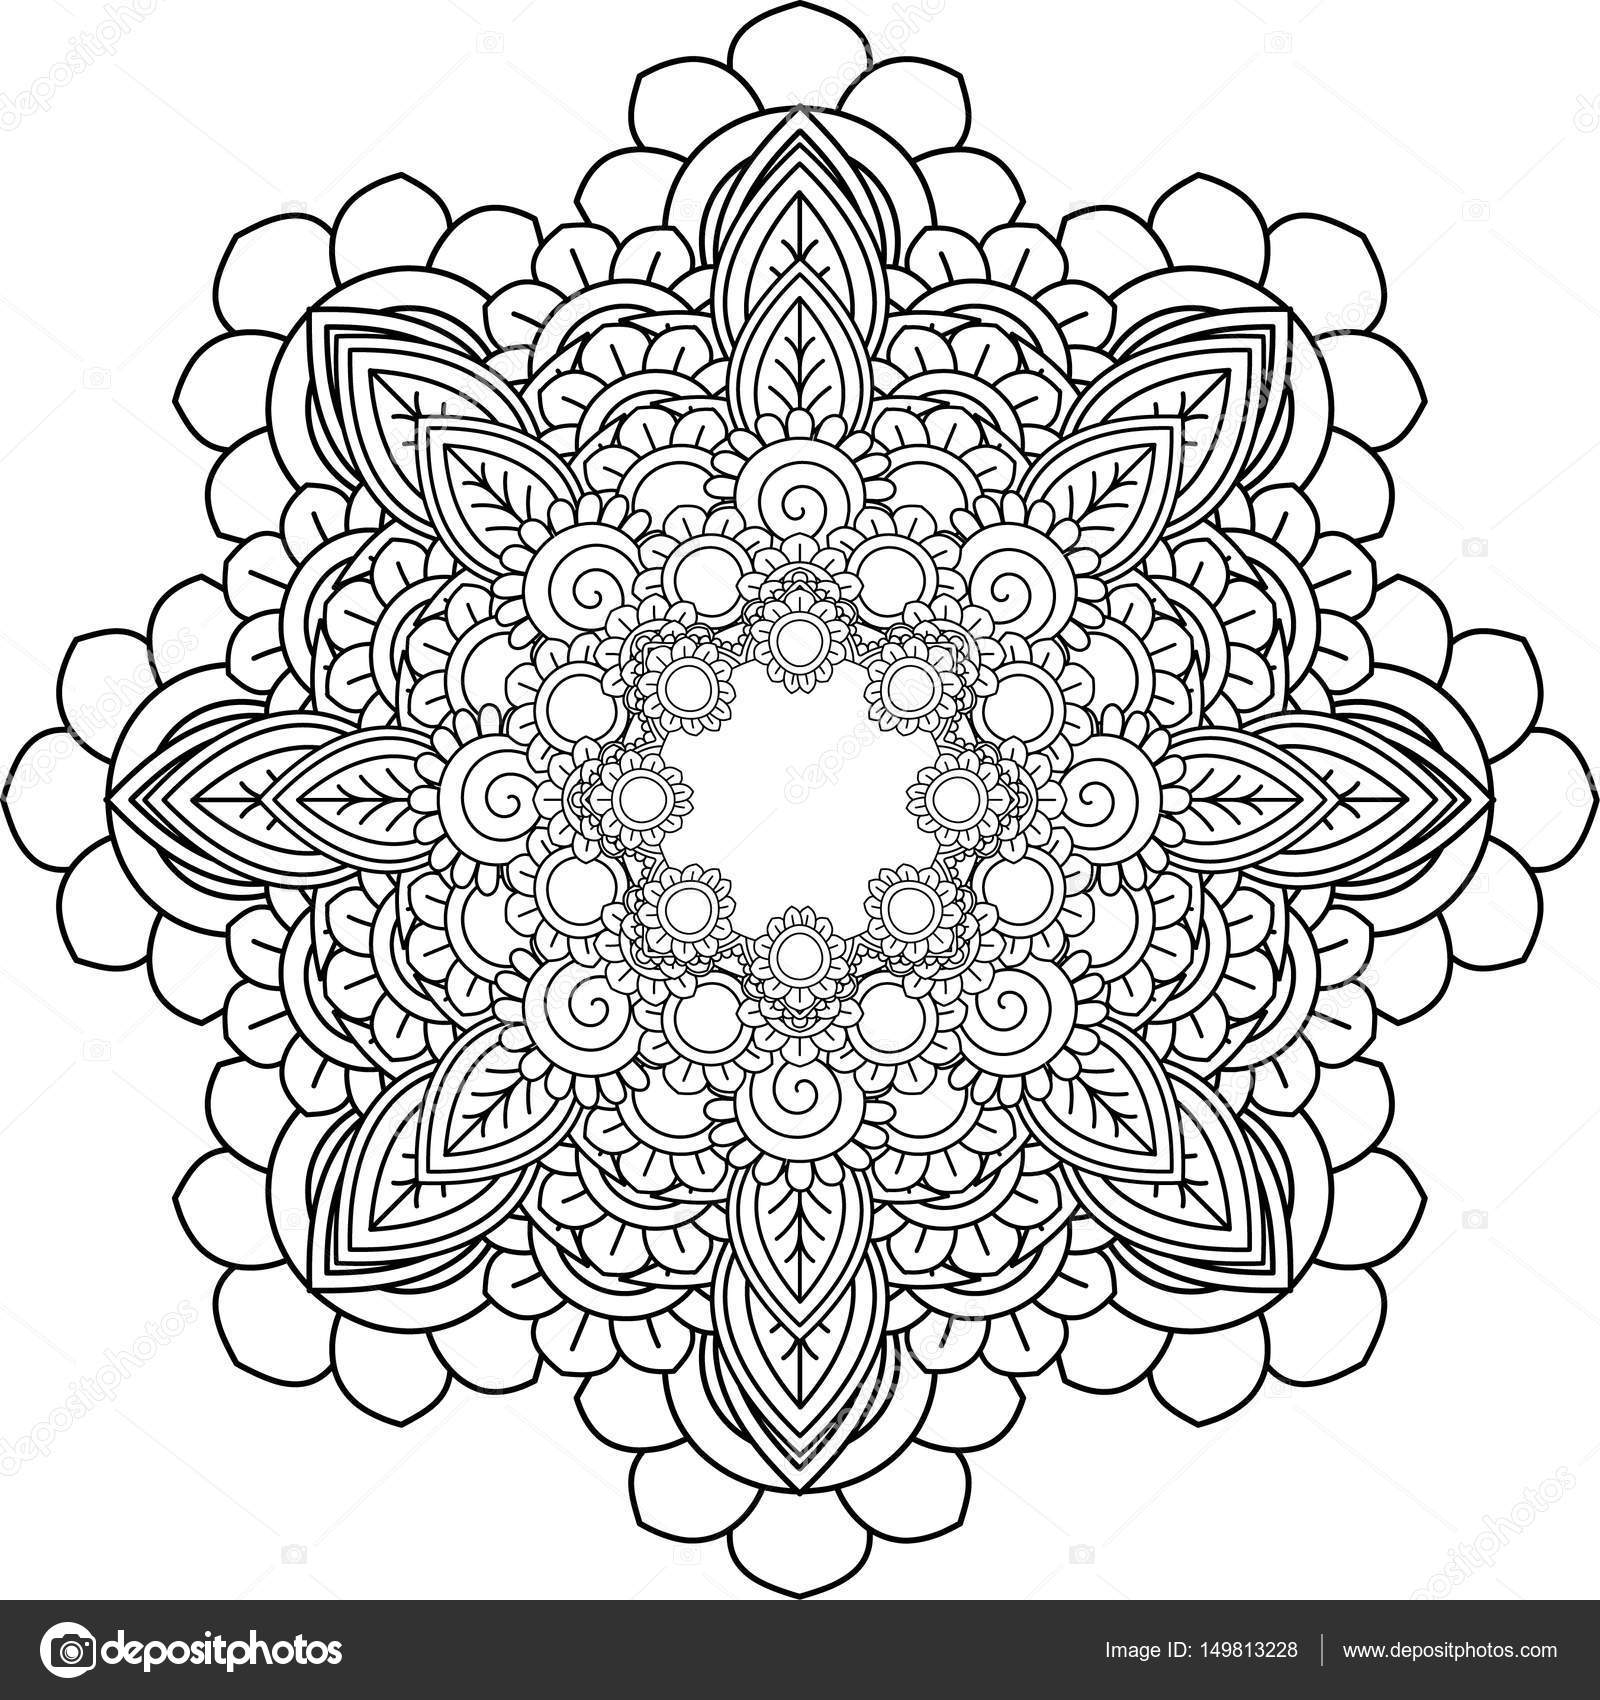 Mandalas drawing wallpaper — Stock Photo © outsiderzone ...